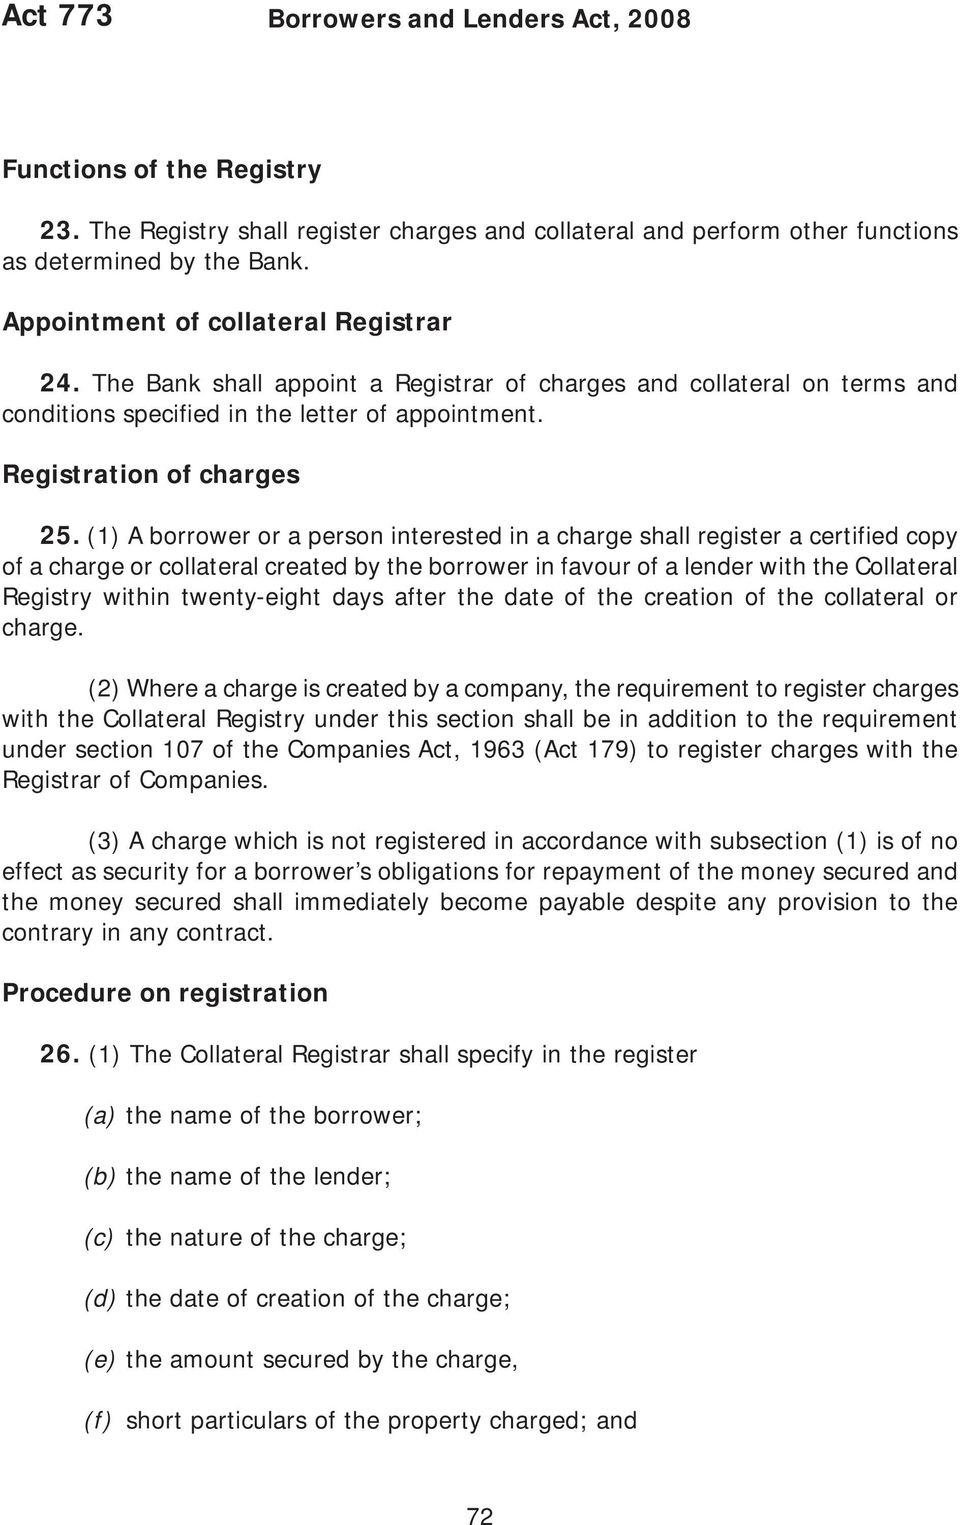 (1) A borrower or a person interested in a charge shall register a certified copy of a charge or collateral created by the borrower in favour of a lender with the Collateral Registry within